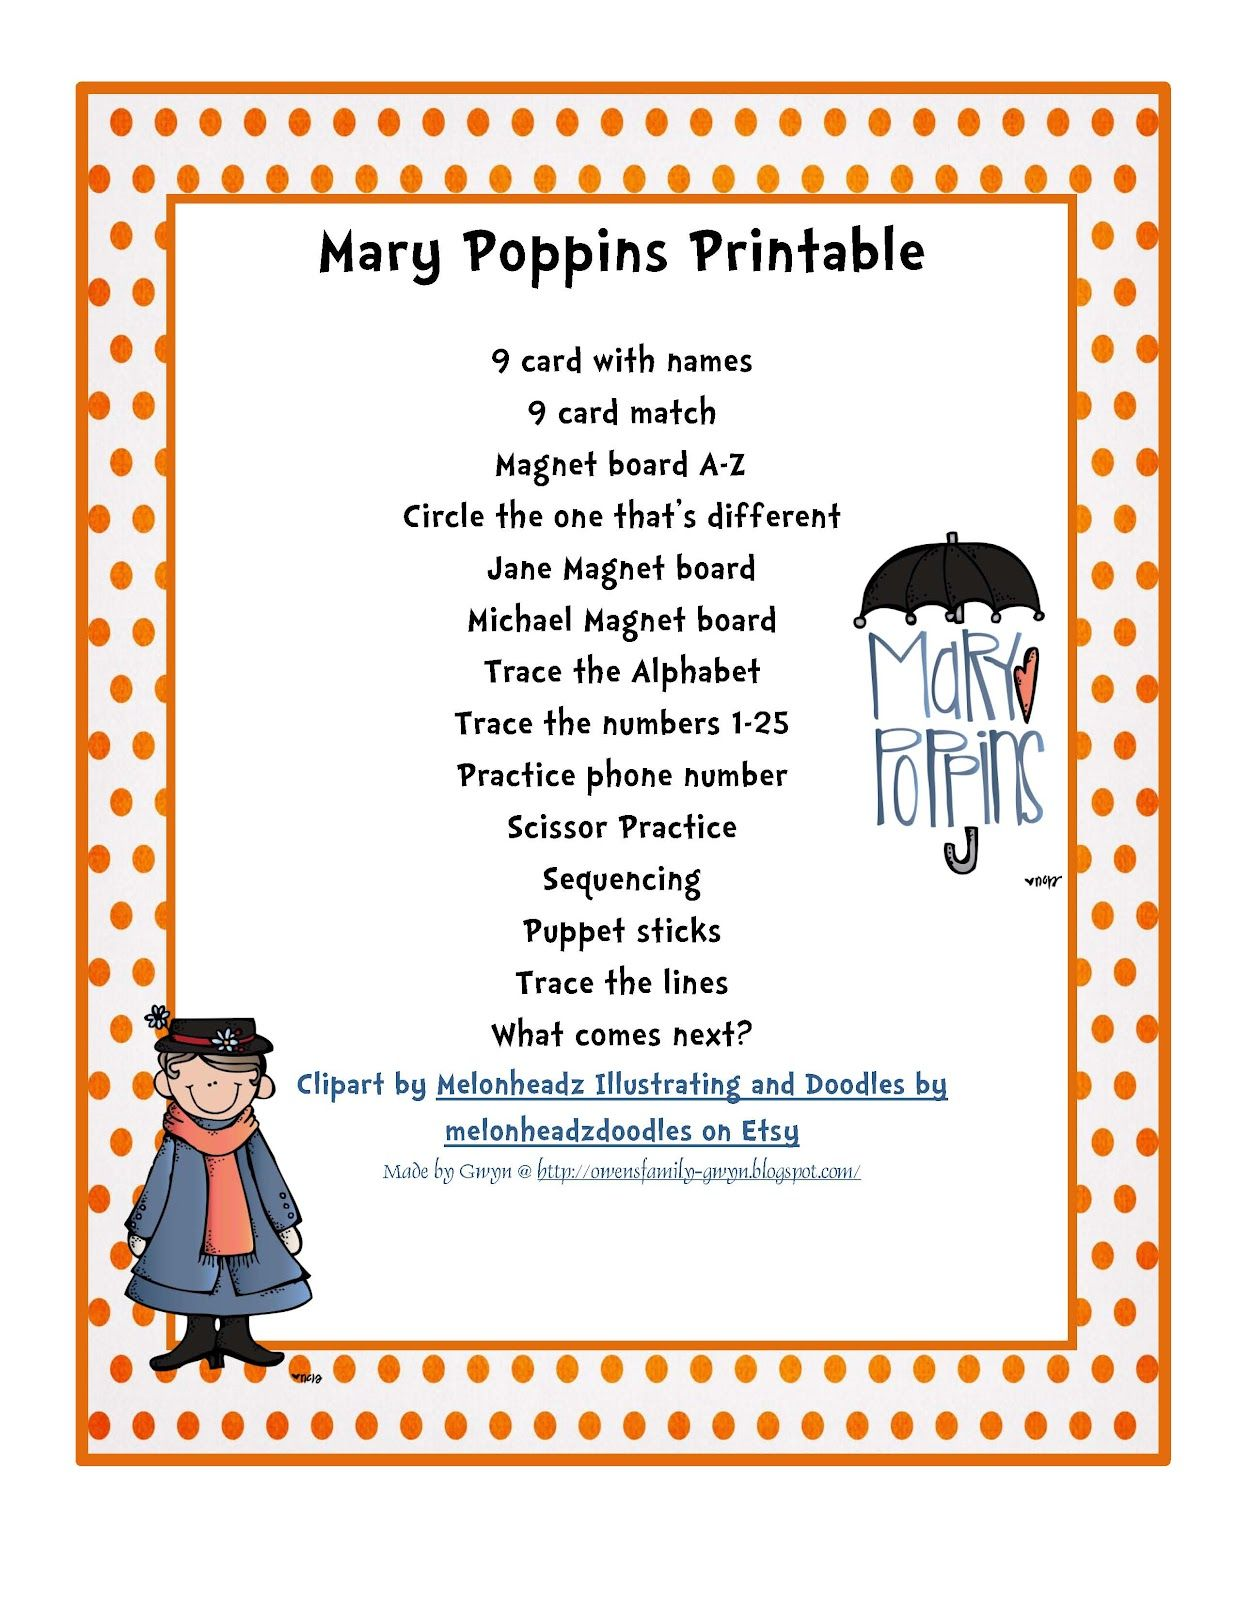 Mary Poppin's Printable  On sale for 75 cents